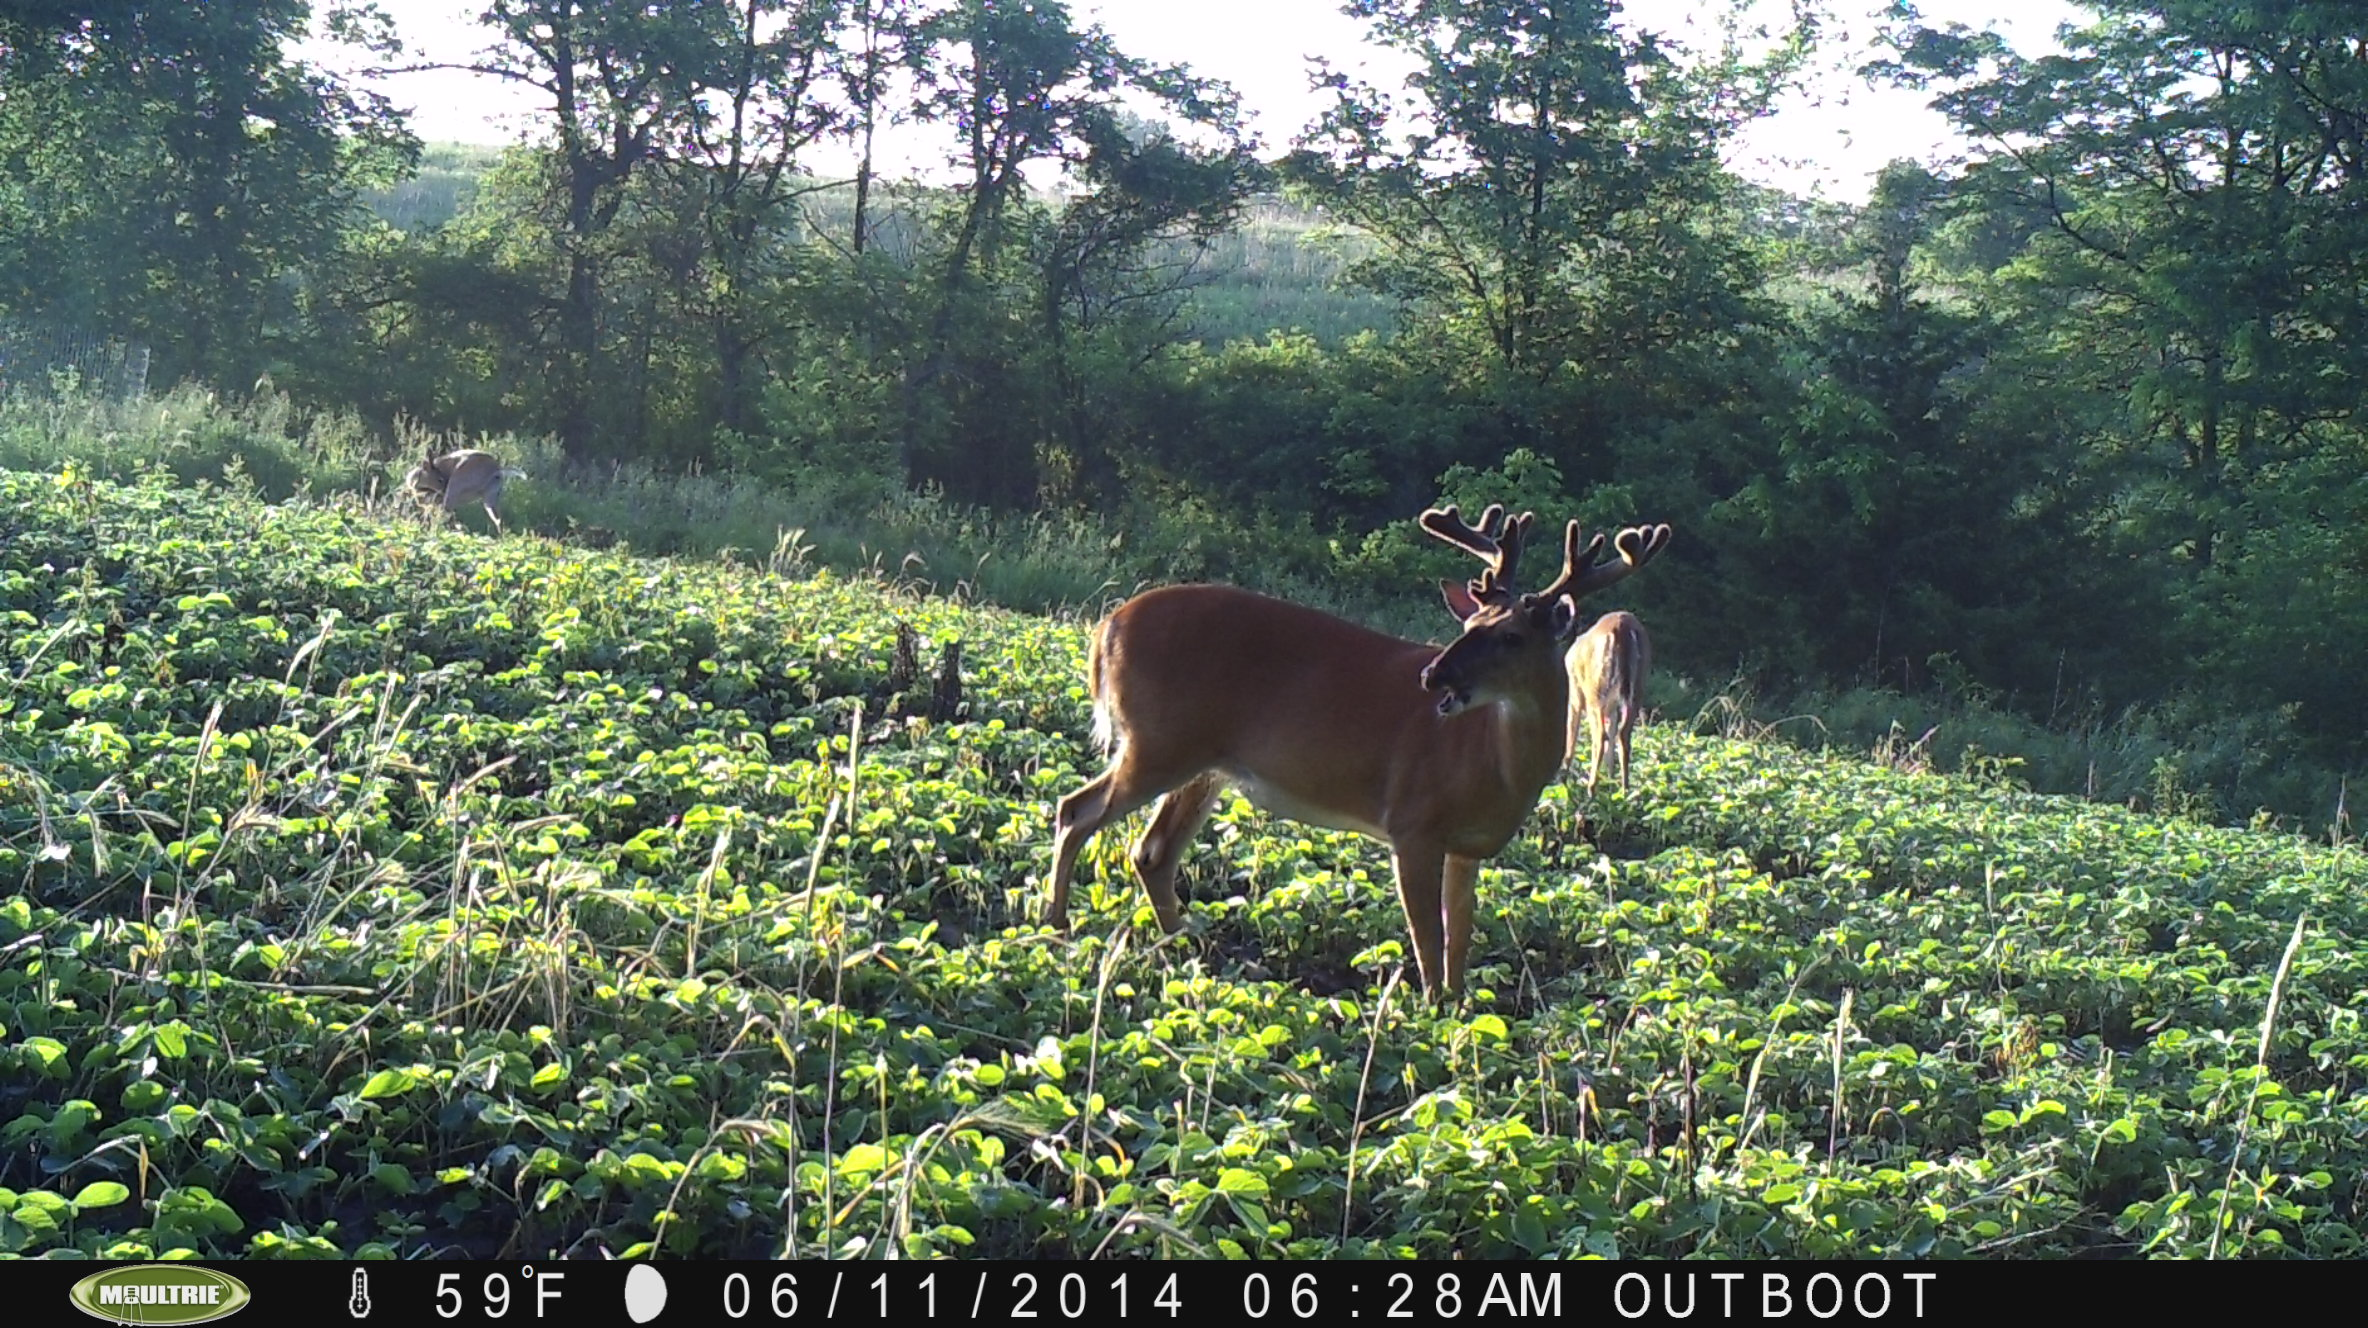 I find it hard to get pictures throughout summer because the deer are so dispersed.  This guy looks pretty good for early June!  I might know this deer??? Stay tuned!